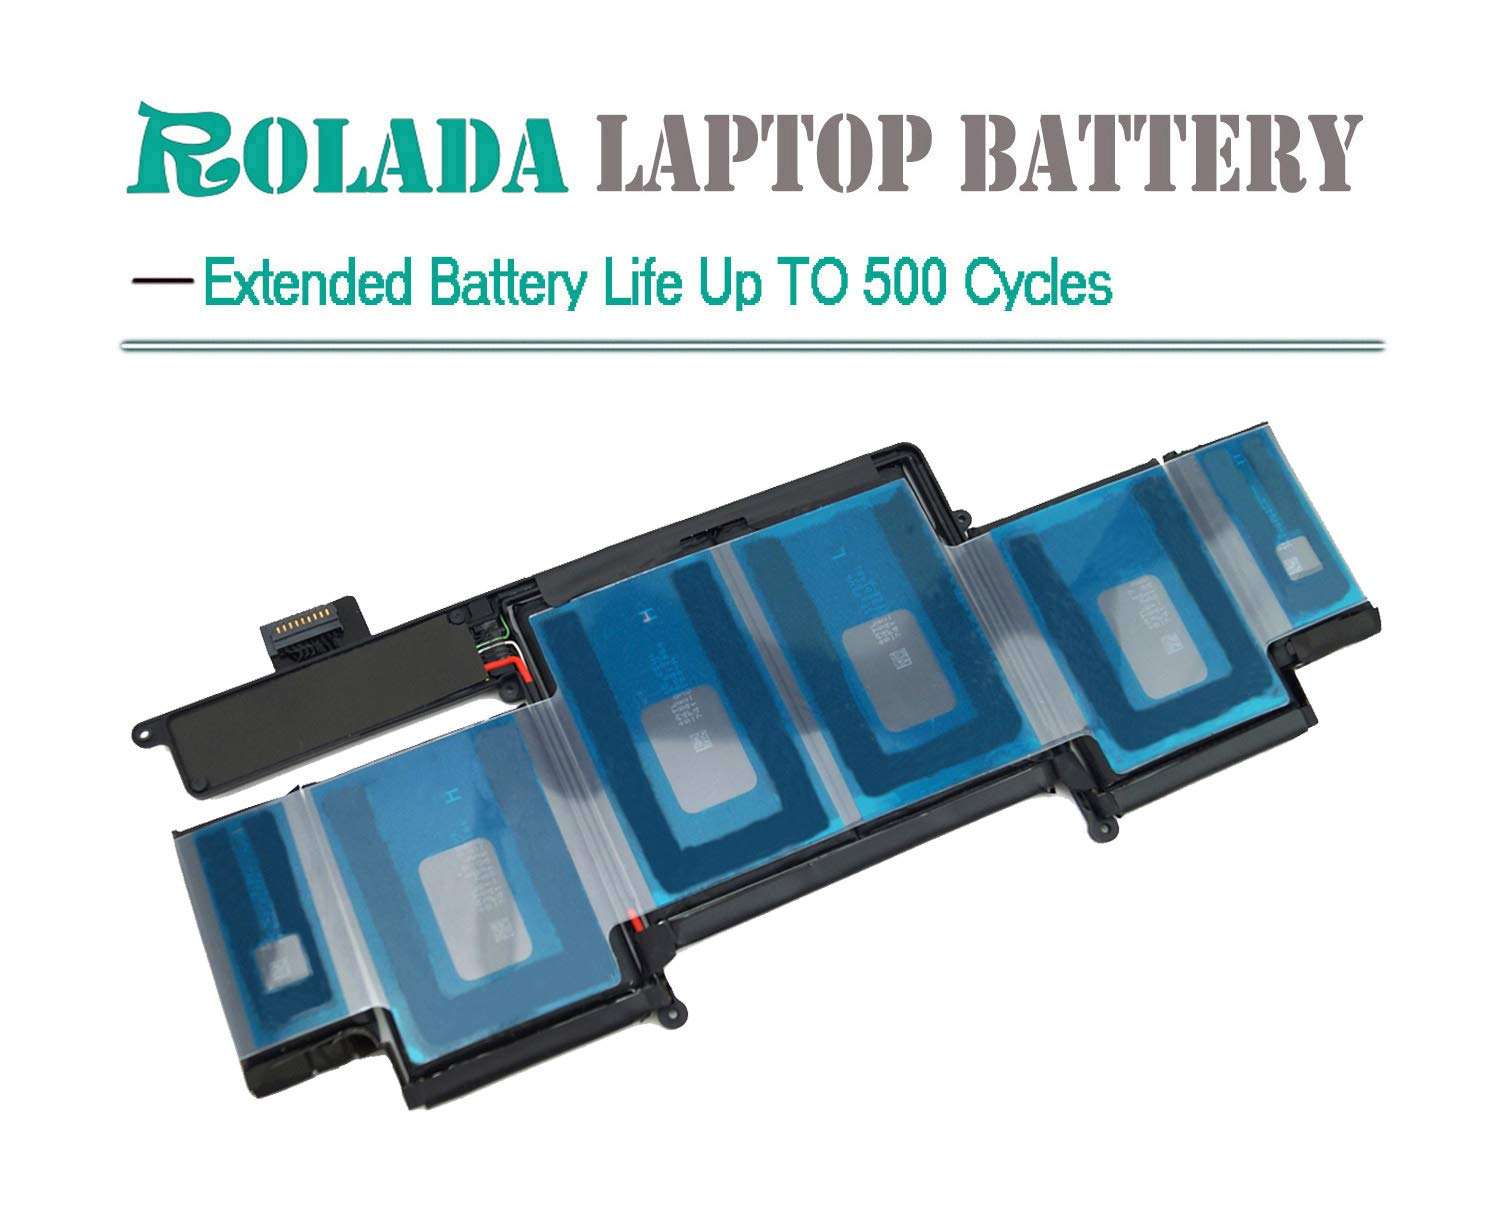 A1493 New Laptop Battery for Apple A1502 ME864LL/A ME866LL/A; MacBook Pro 13'' Retina Battery-Only for Late 2013, Mid 2014 Version [Li-Polymer 11.34V 71.8Wh] by ROLADA (Image #3)